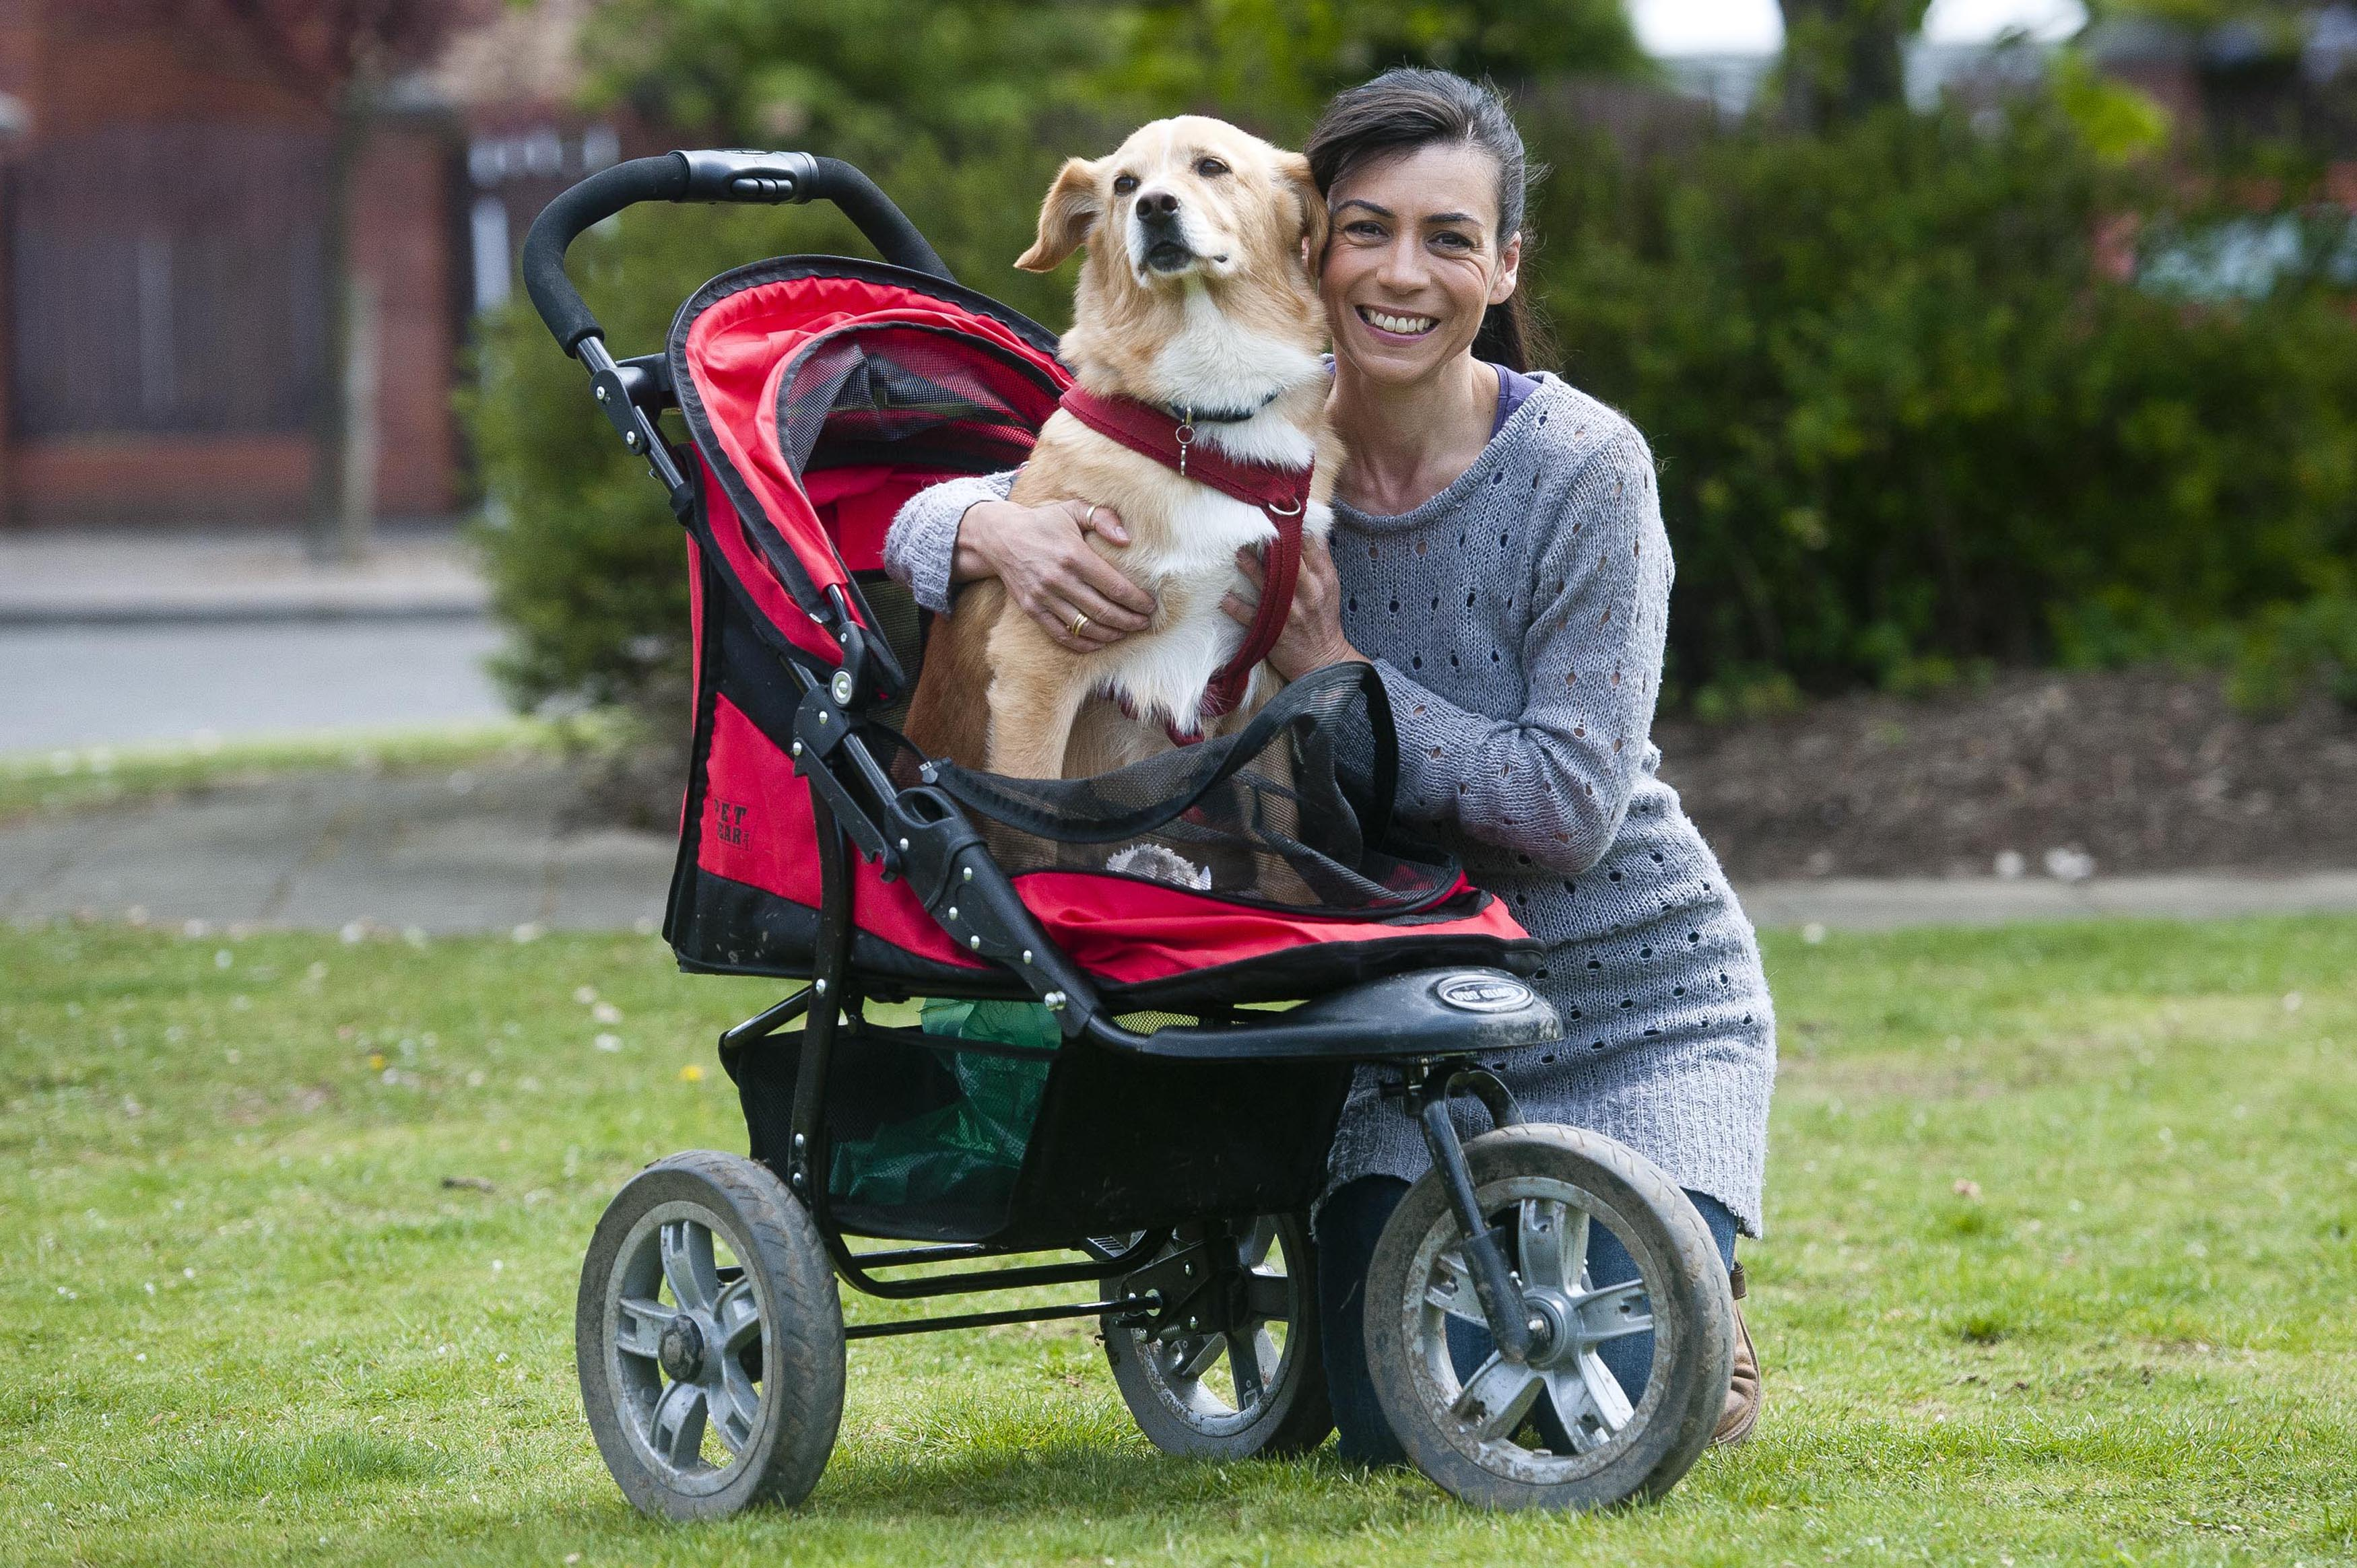 Dog Needs Buggy To Get Around After Legs Were Amputated